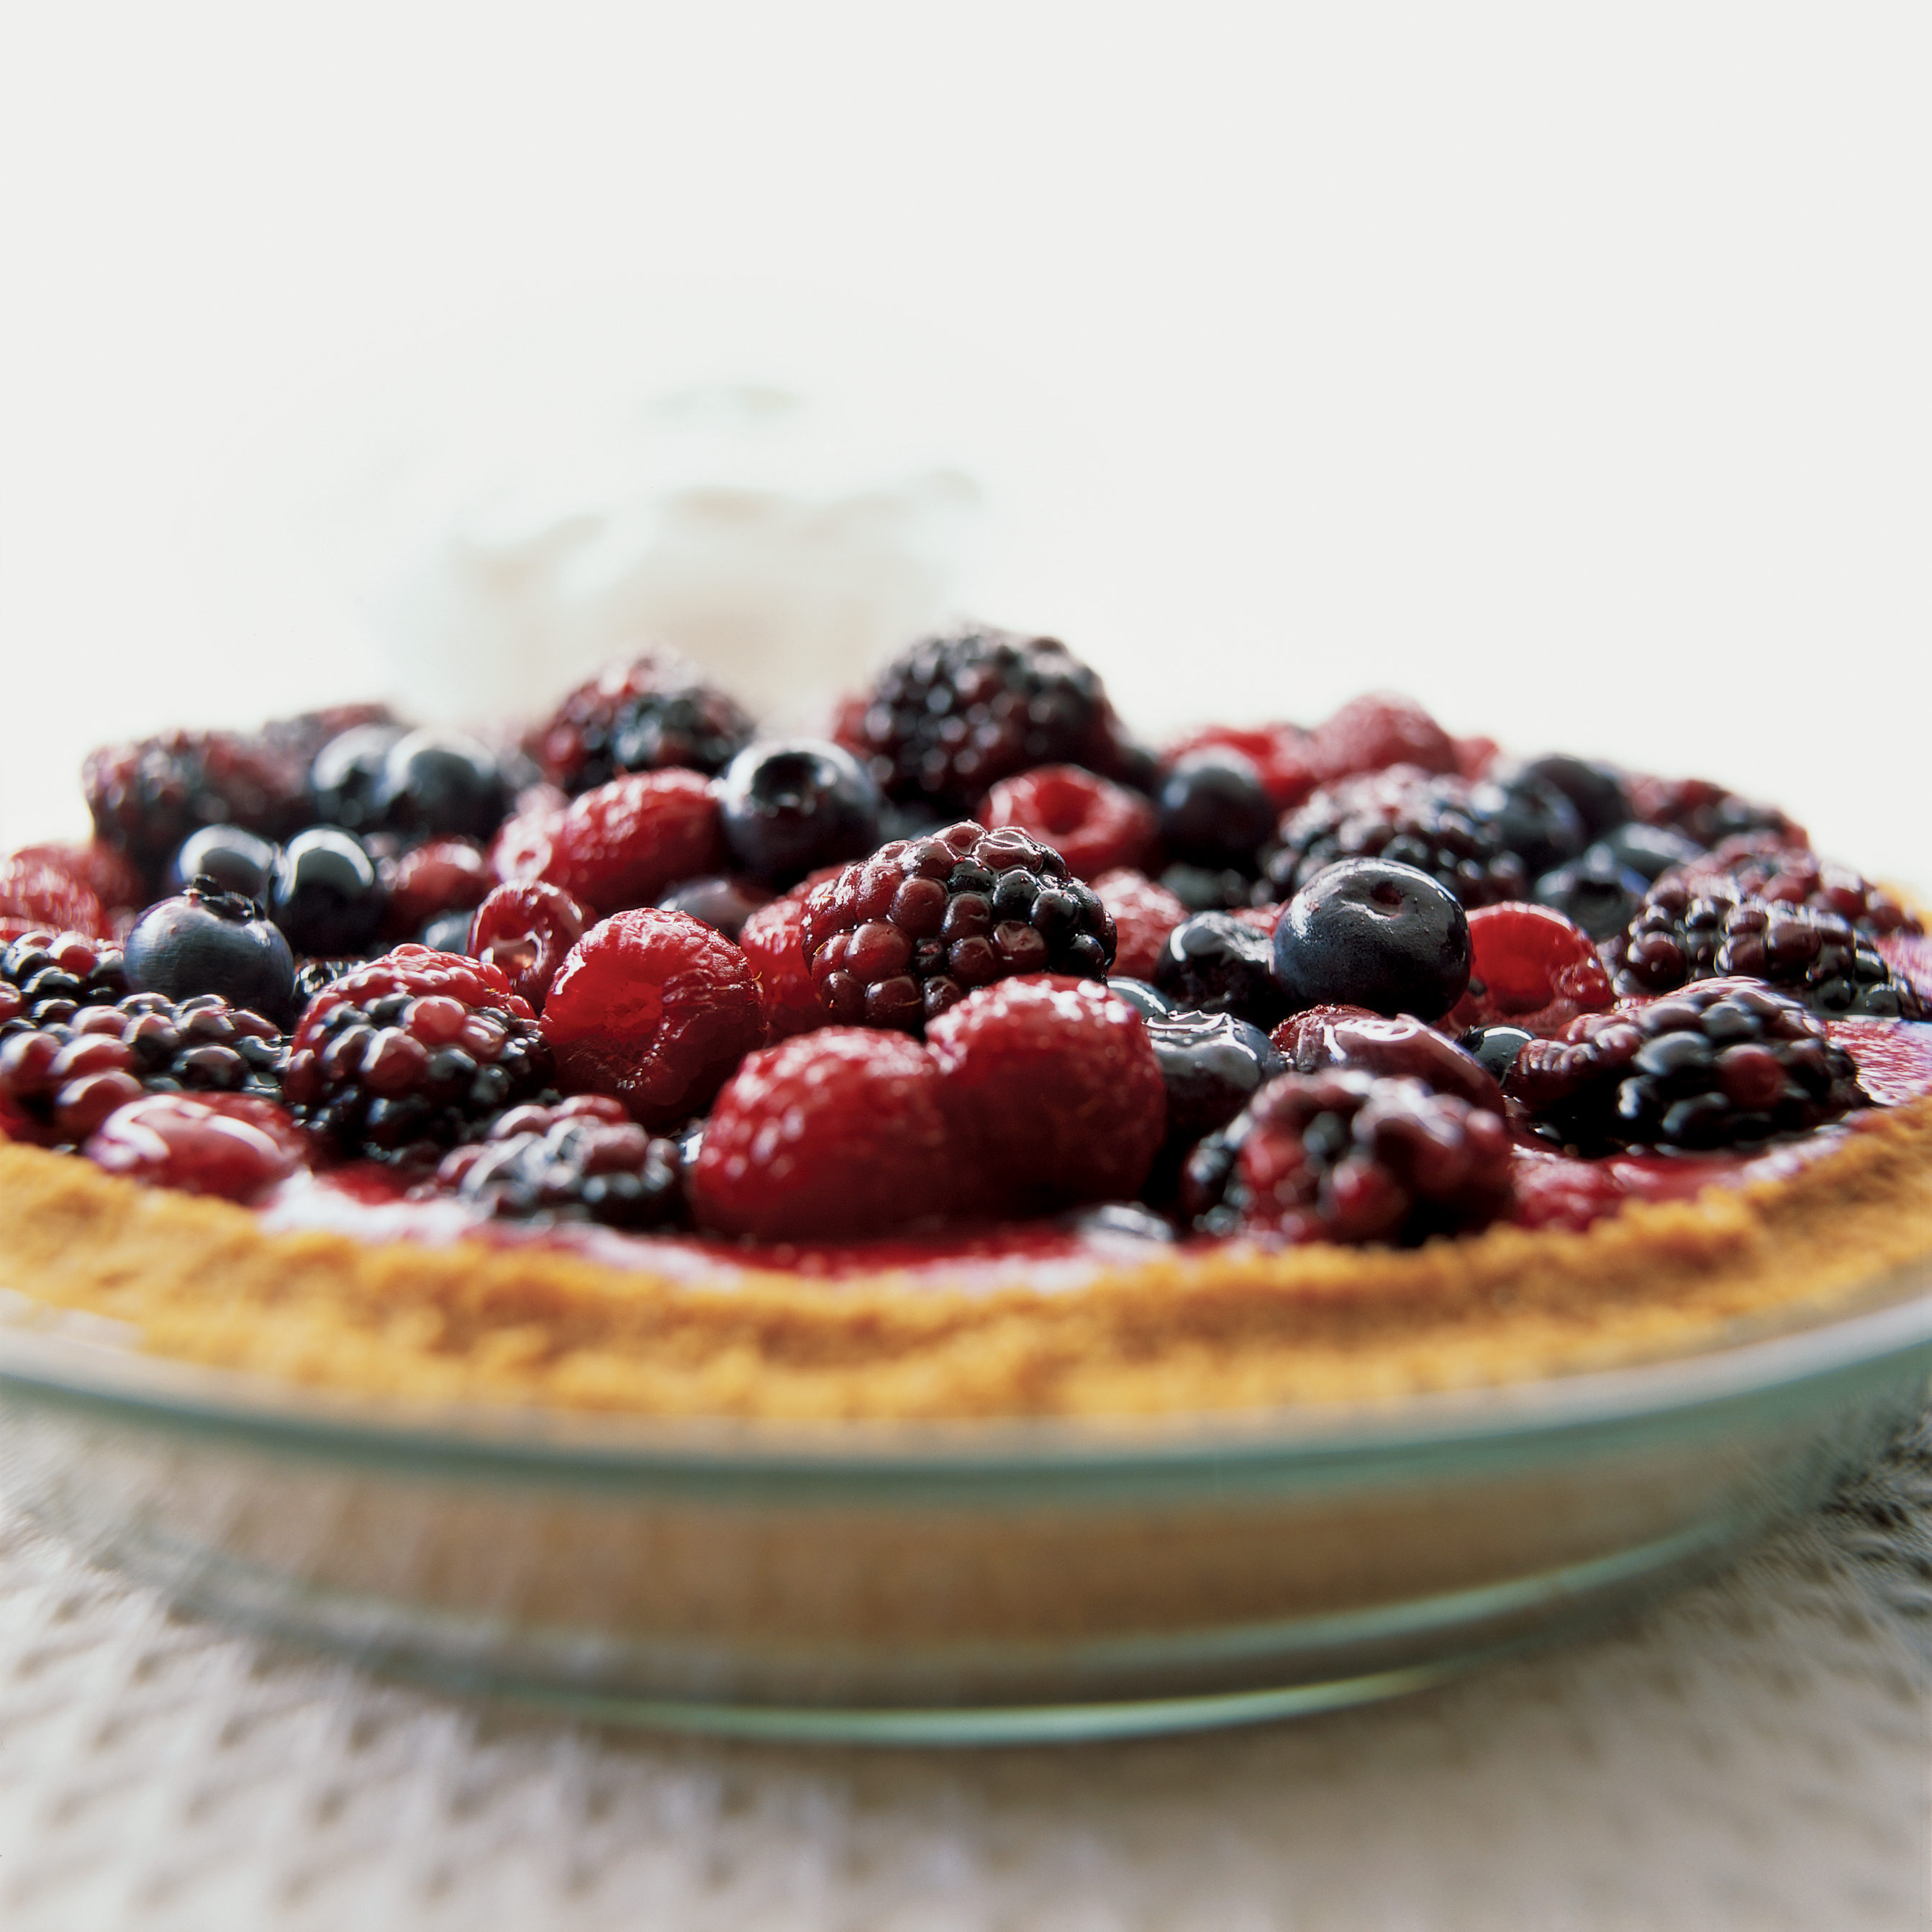 Summer Berry Pie | America's Test Kitchen